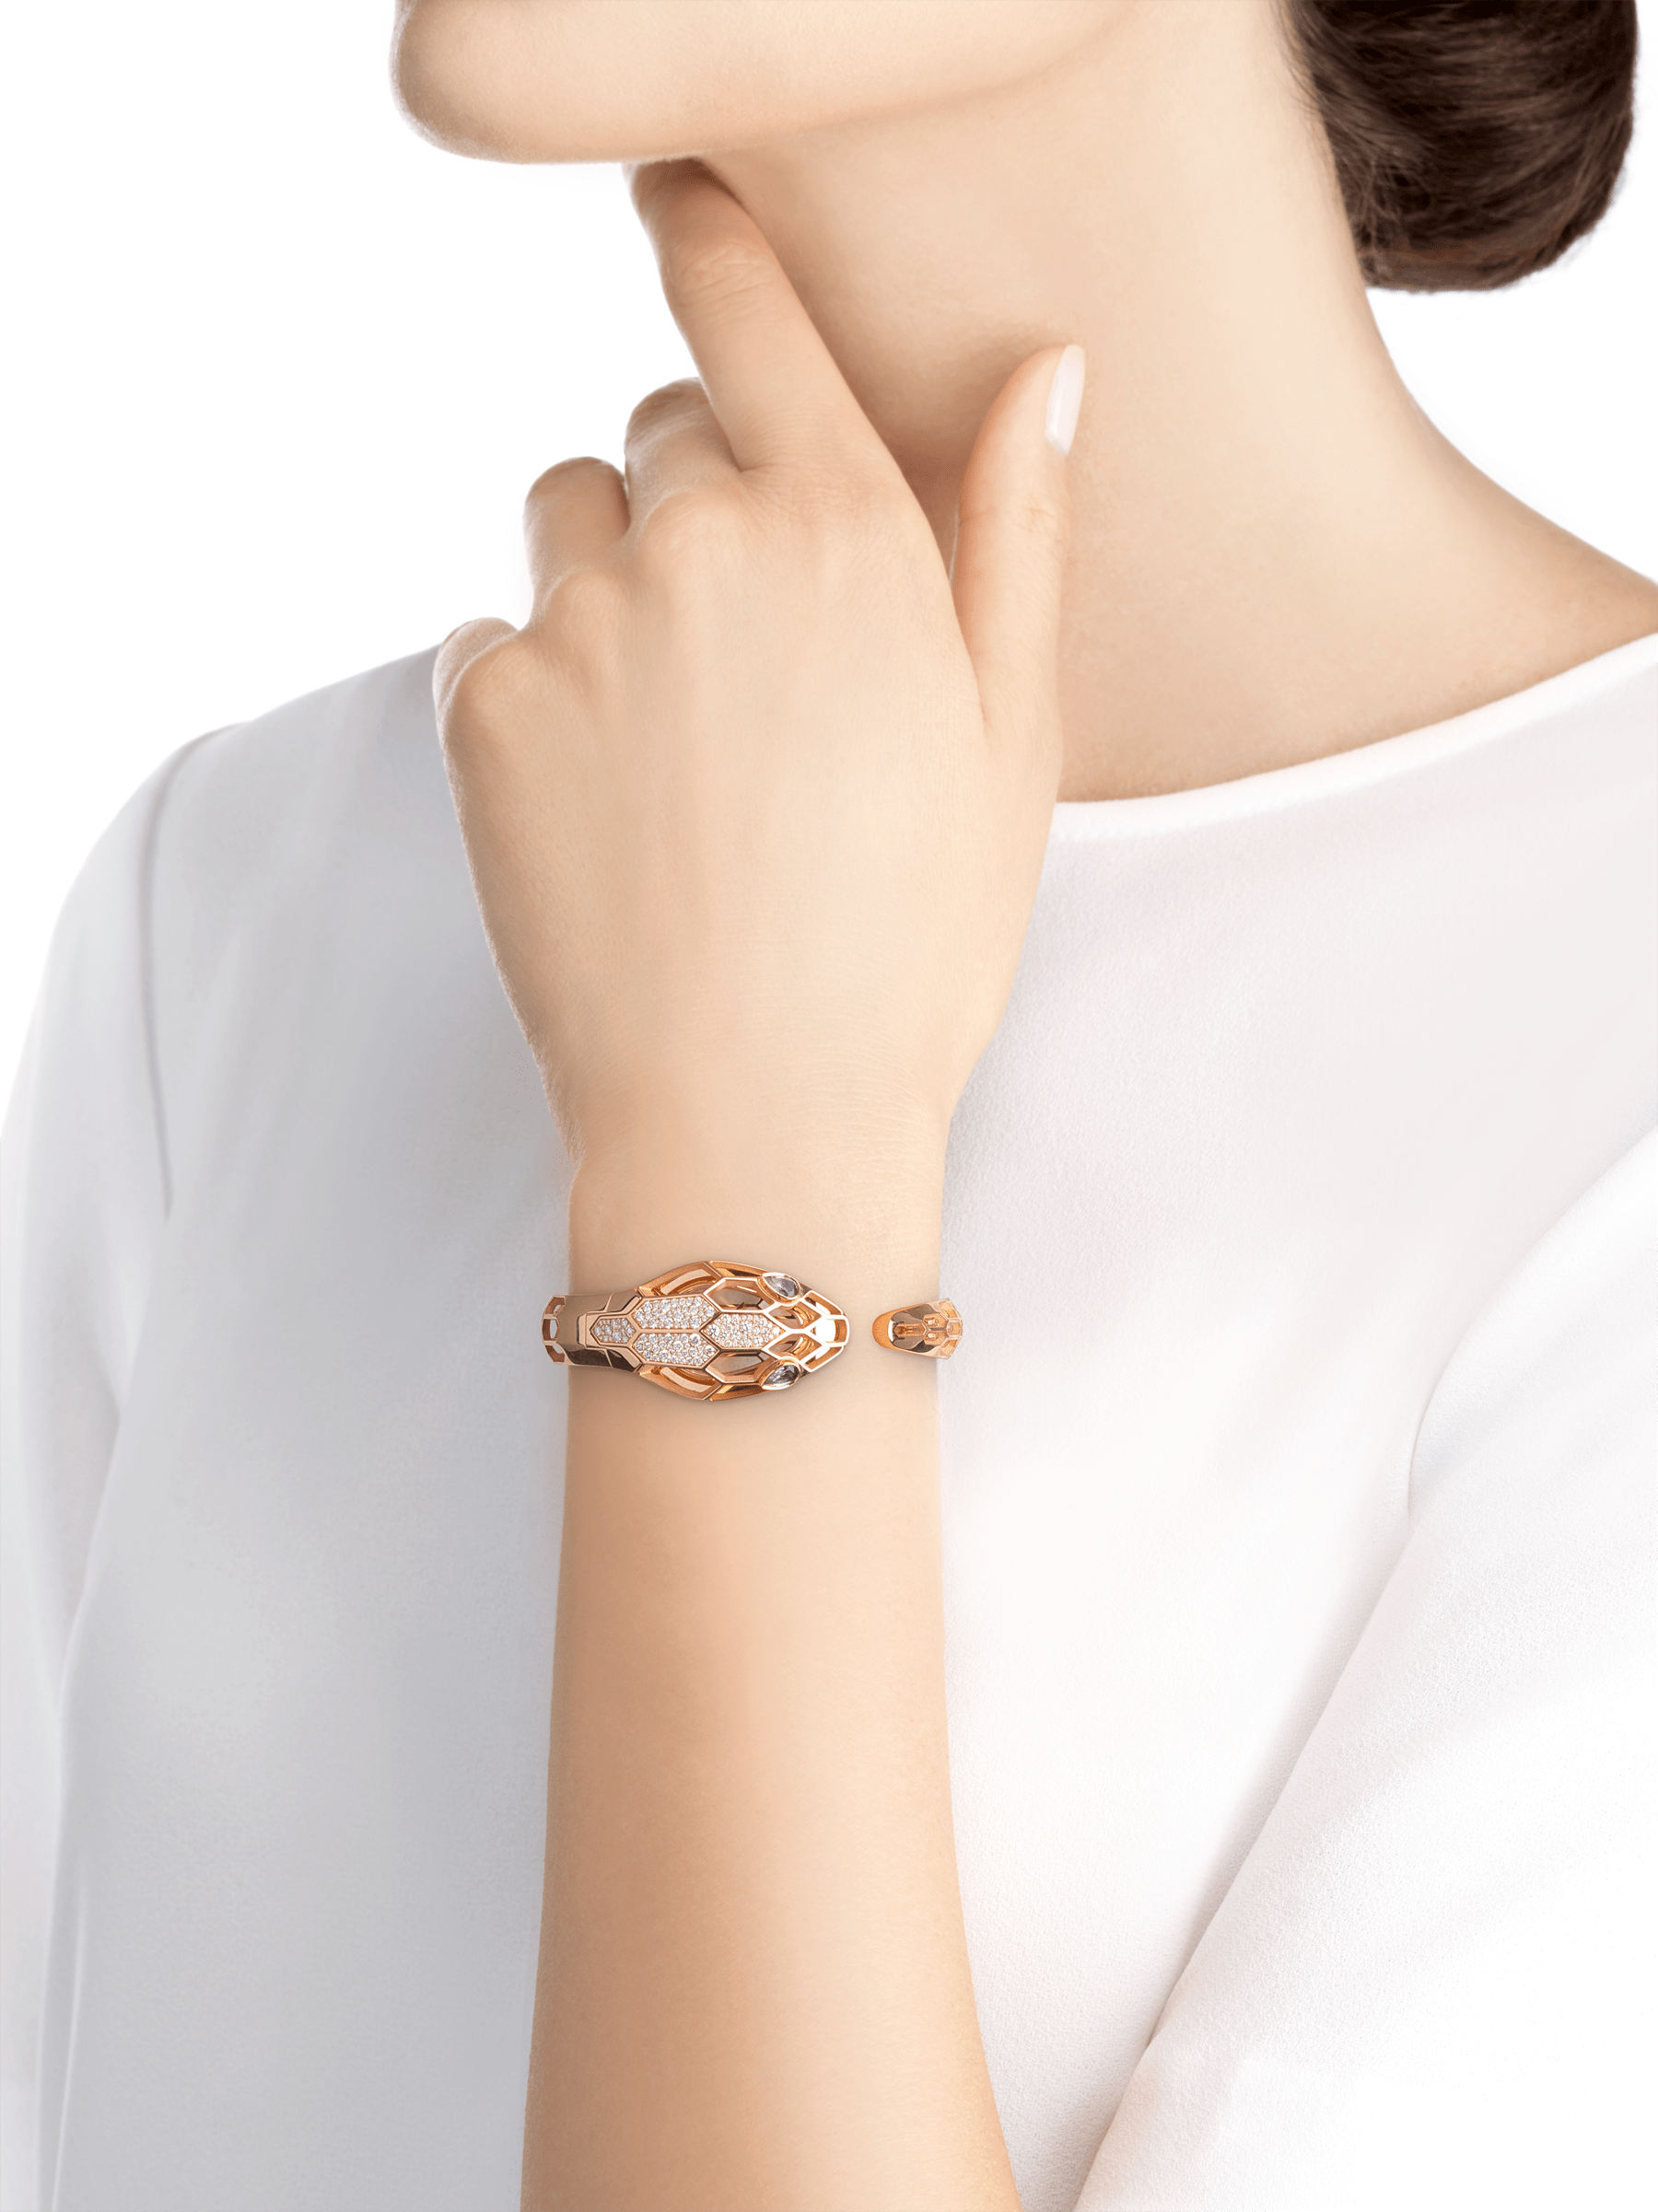 Serpenti Misteriosi Secret Watch with 18 kt rose gold skeletonized case set with round brilliant-cut diamonds, white mother-of-pearl dial, 18 kt rose gold skeletonized bangle bracelet and pear-shaped amethyst eyes. SrpntMister-SecretWtc-rose-gold image 7